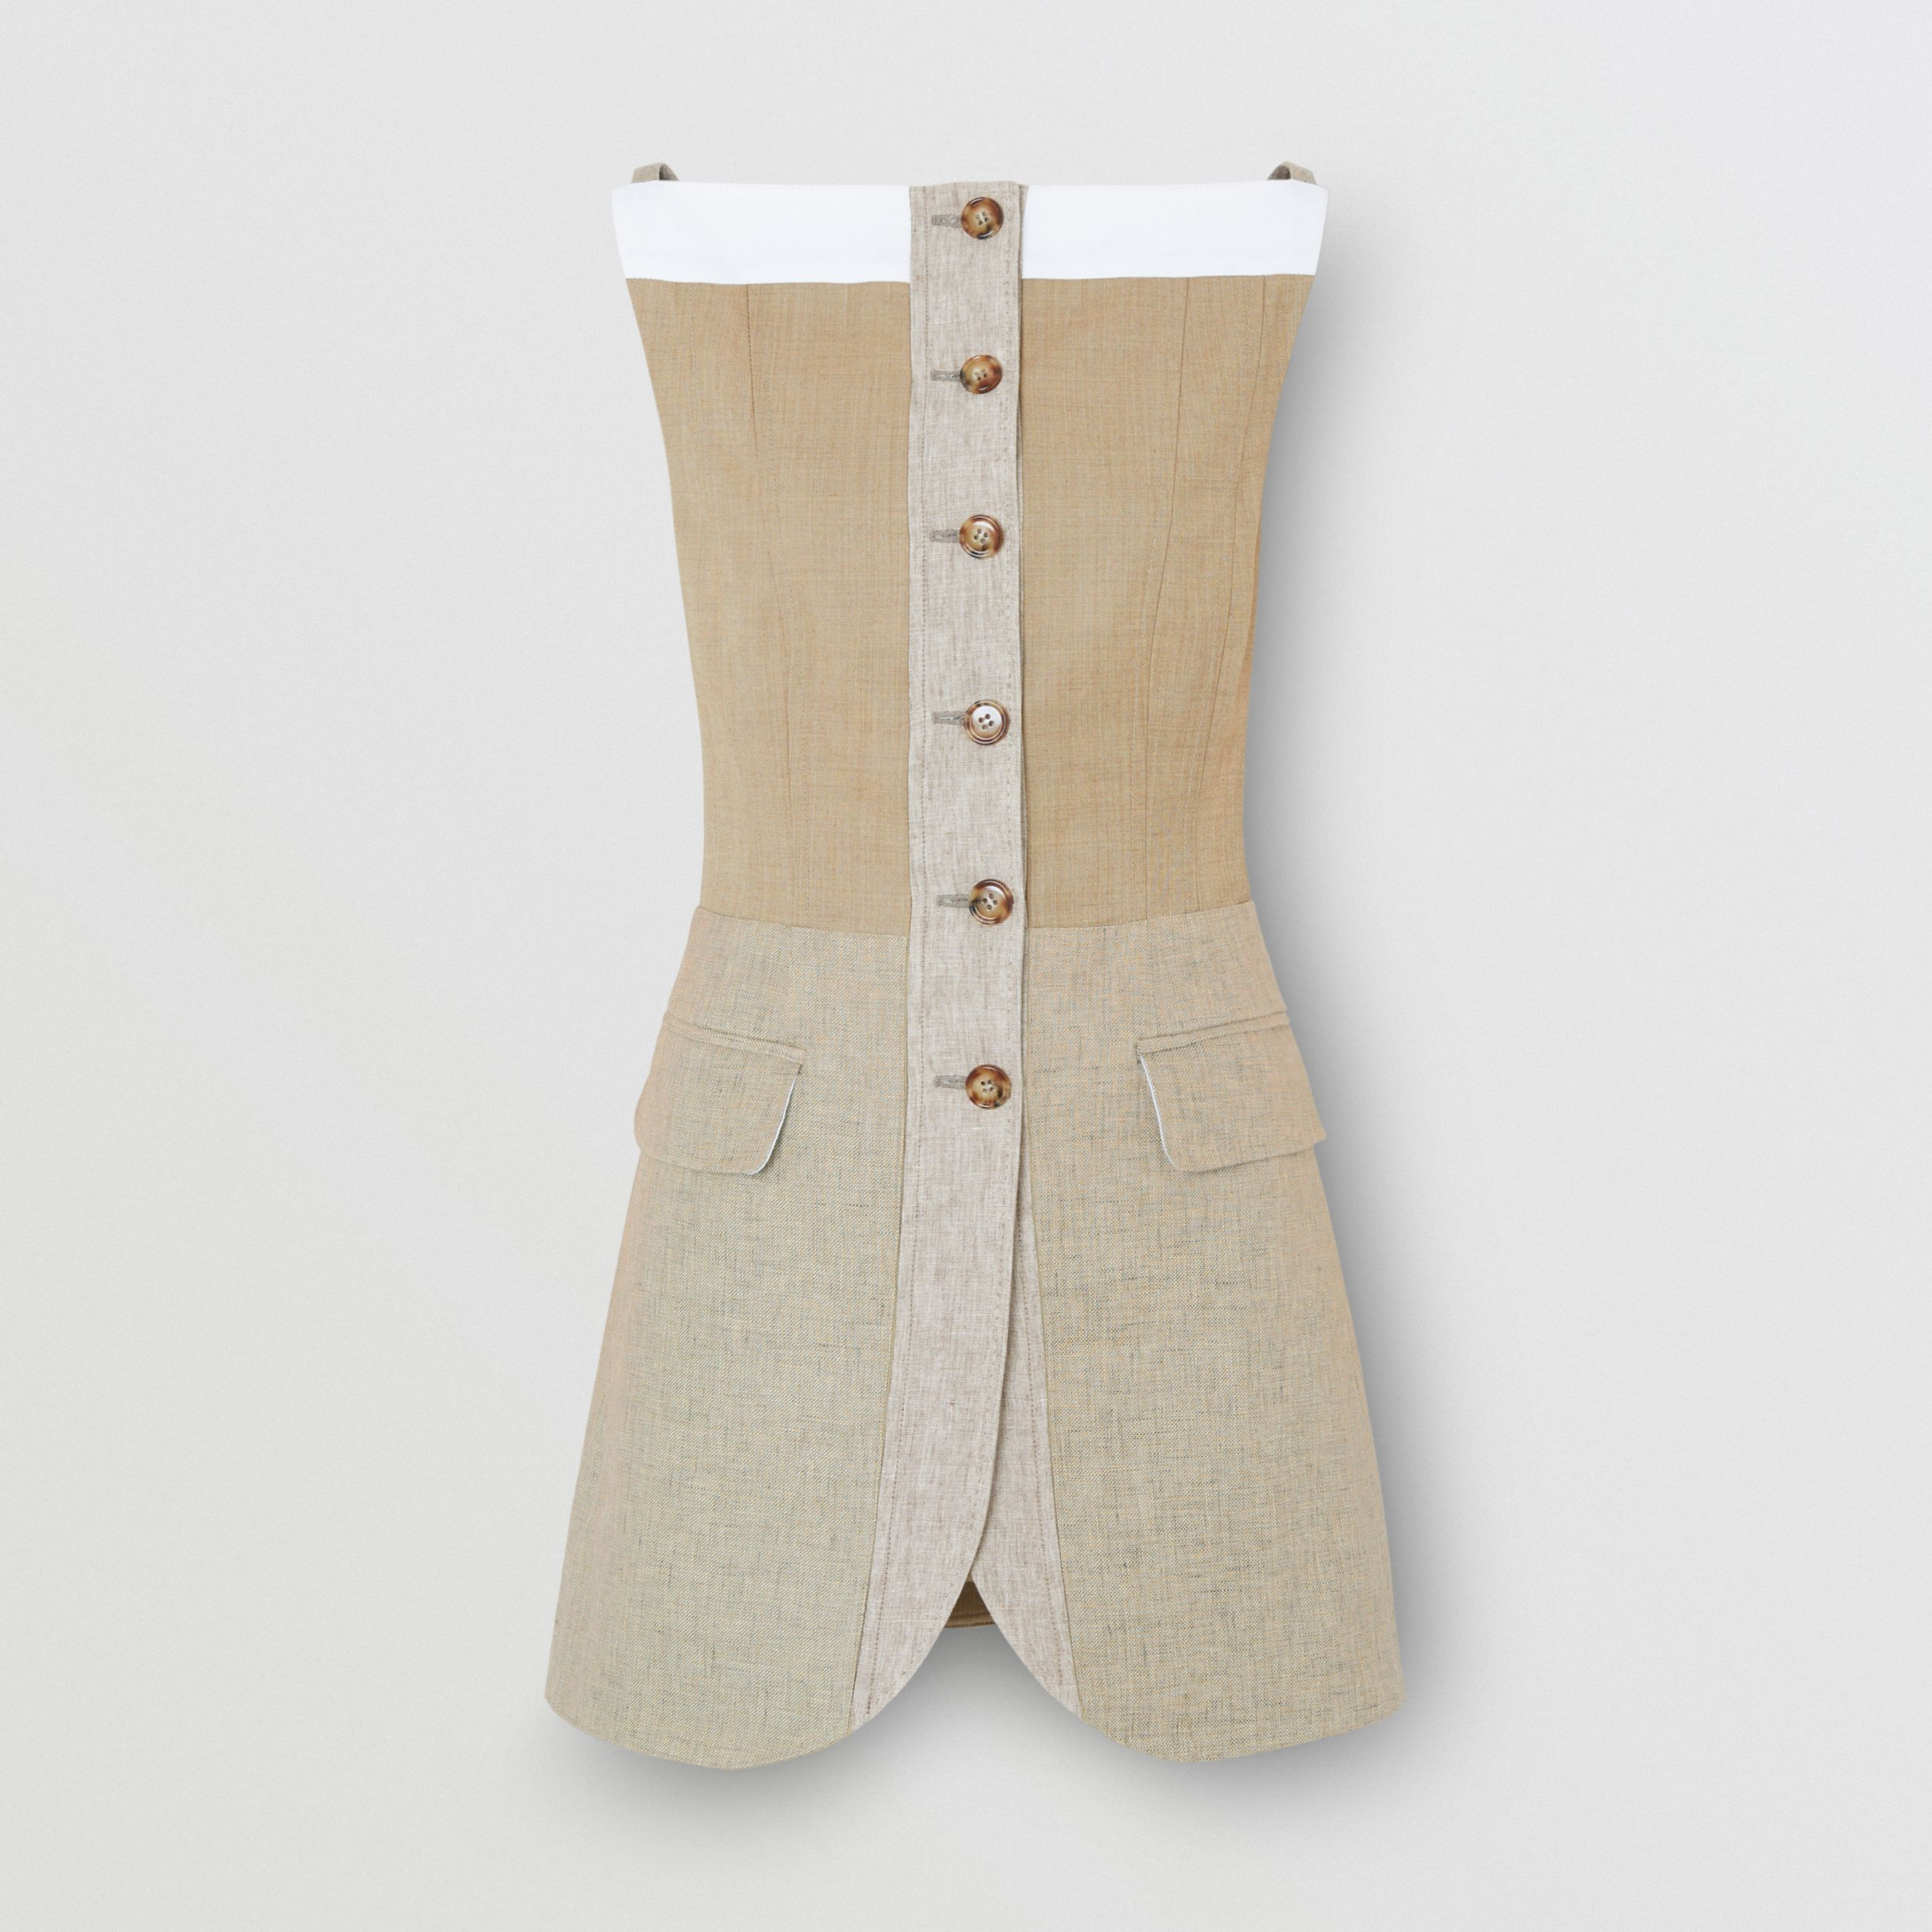 Wool Cashmere and Linen Waistcoat in Pecan Melange - Women | Burberry - 4